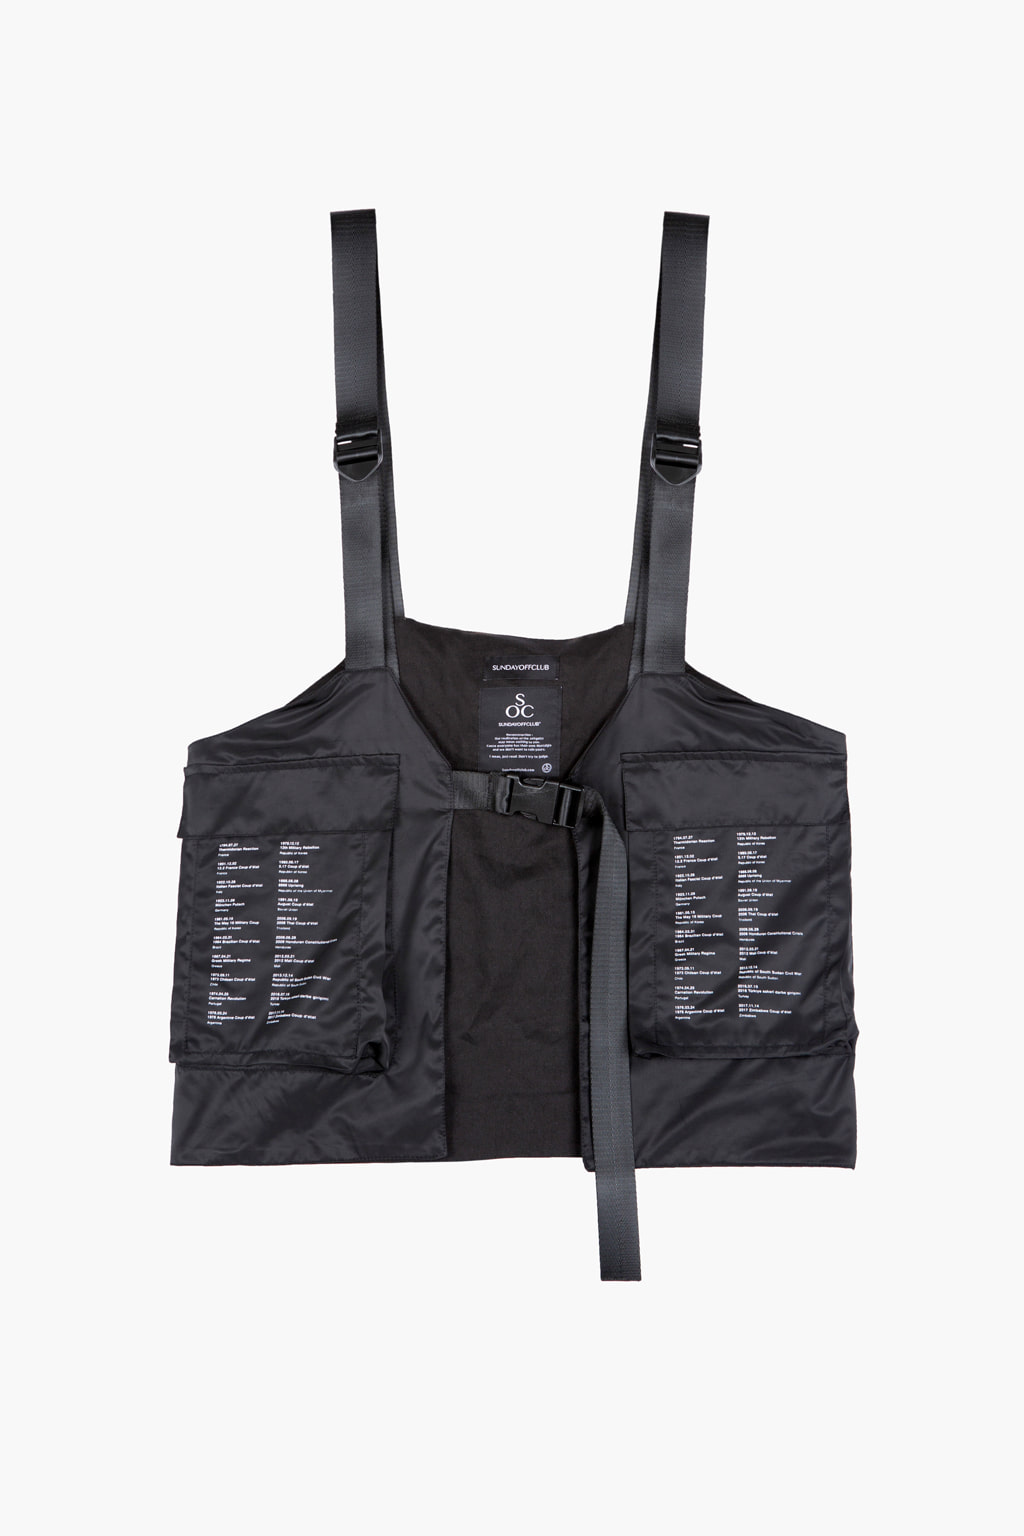 Patch Detail Bag Waterproof Vest - black